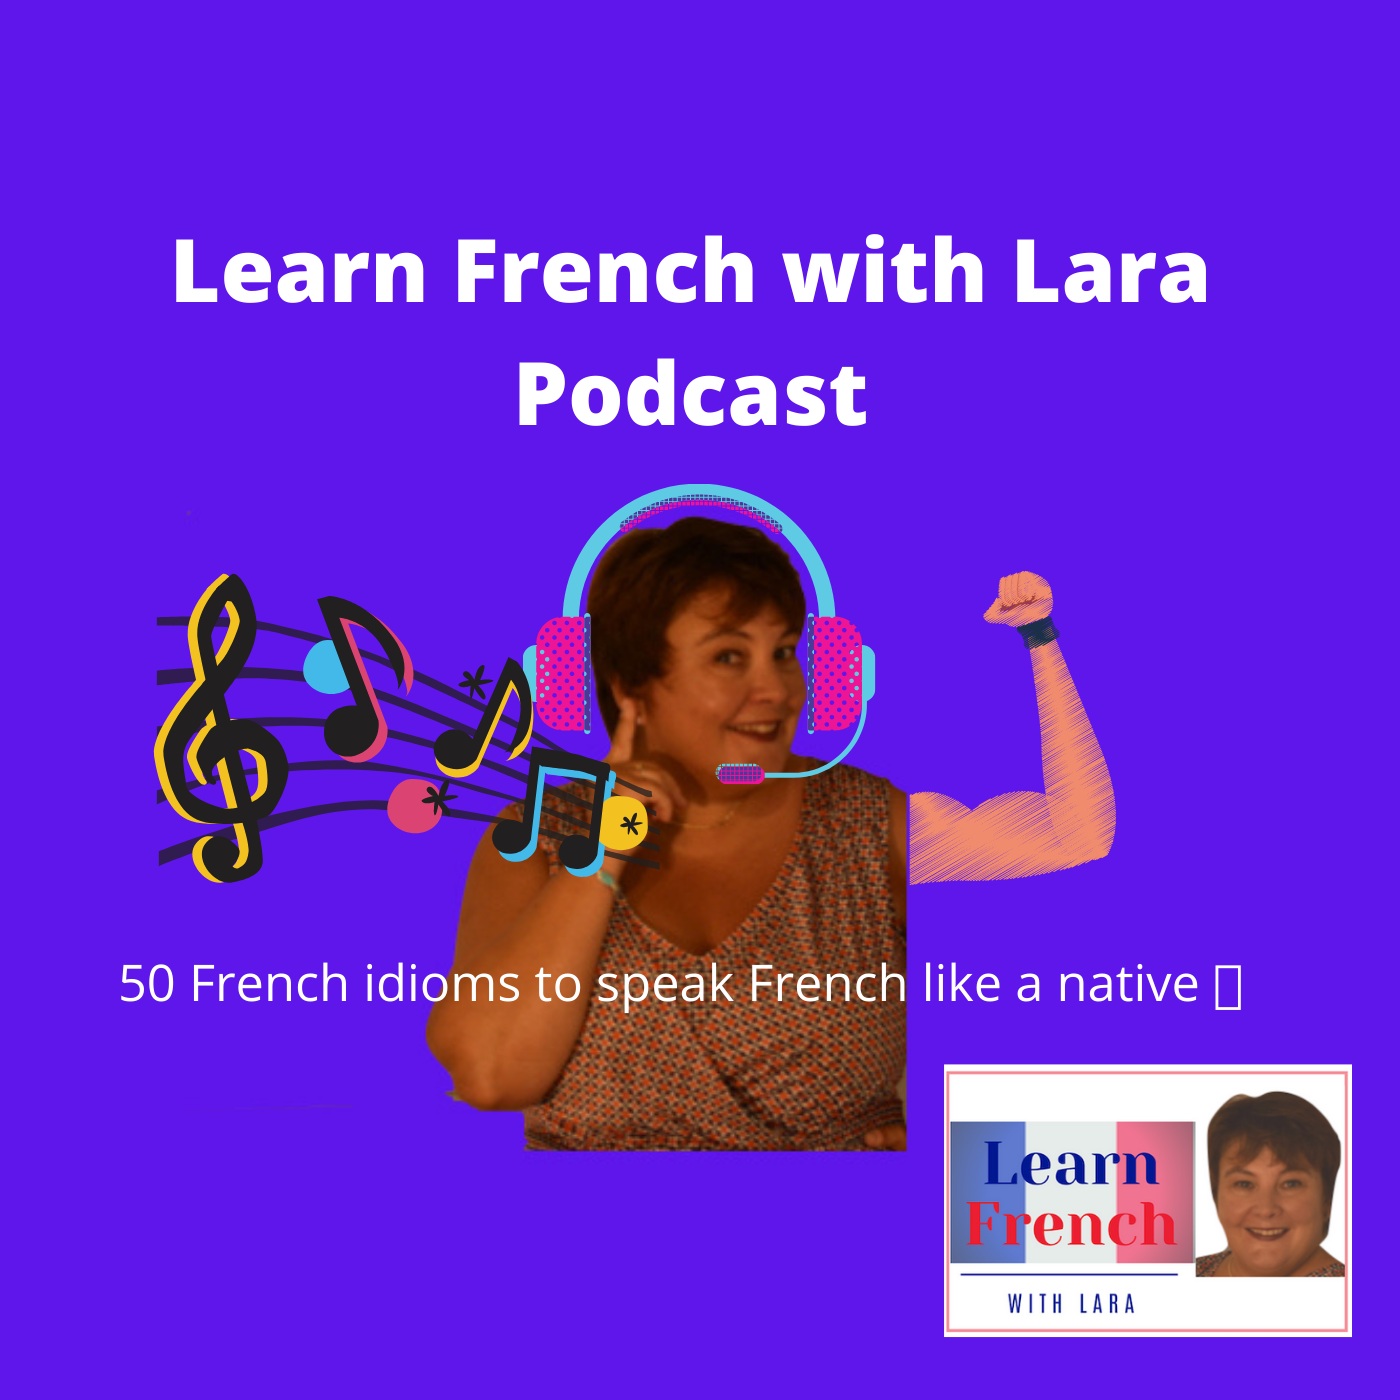 Learn French with Lara